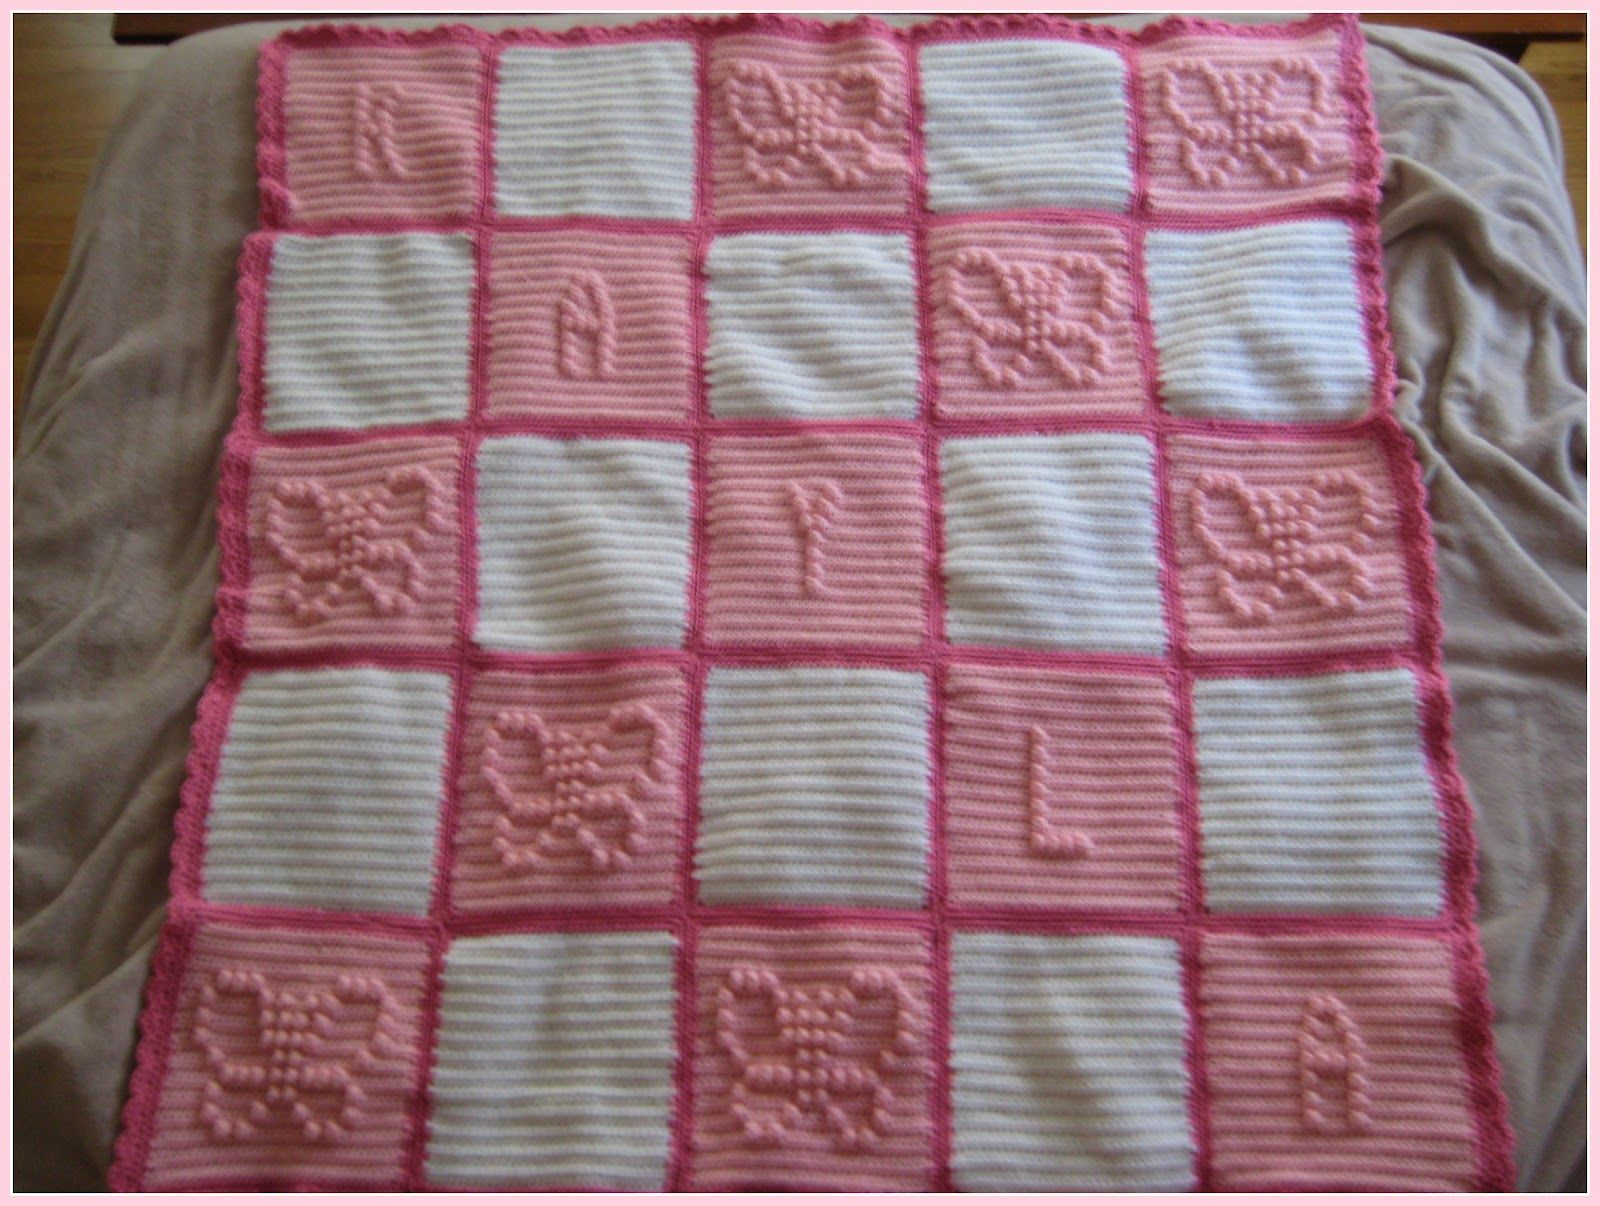 A blanket 2 keep crochet show tell baby blanket 4 crochet a blanket 2 keep crochet show tell baby blanket 4 bankloansurffo Choice Image